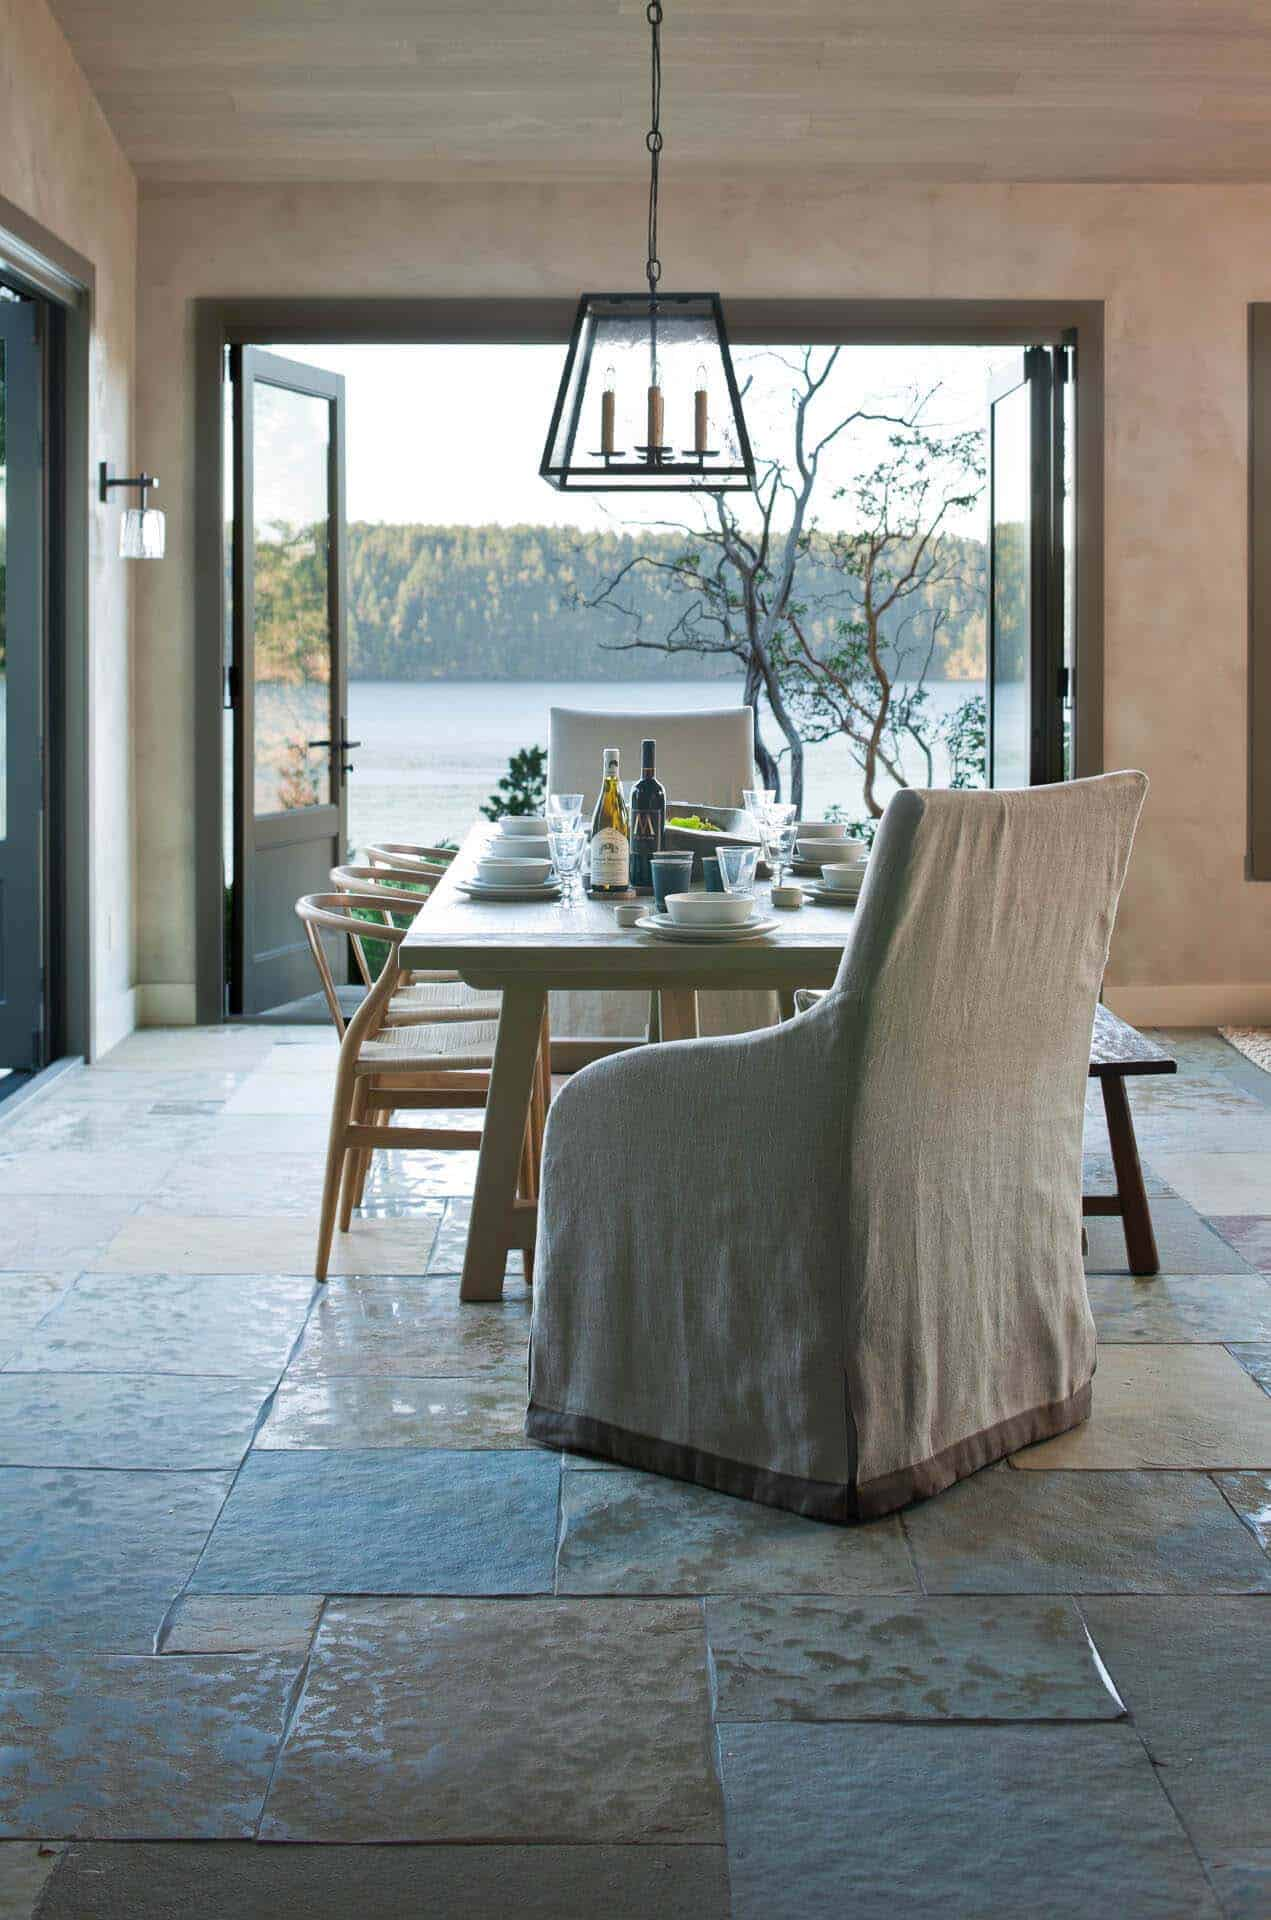 Orcas Island Retreat-Peter Stoner Architects-06-1 Kindesign